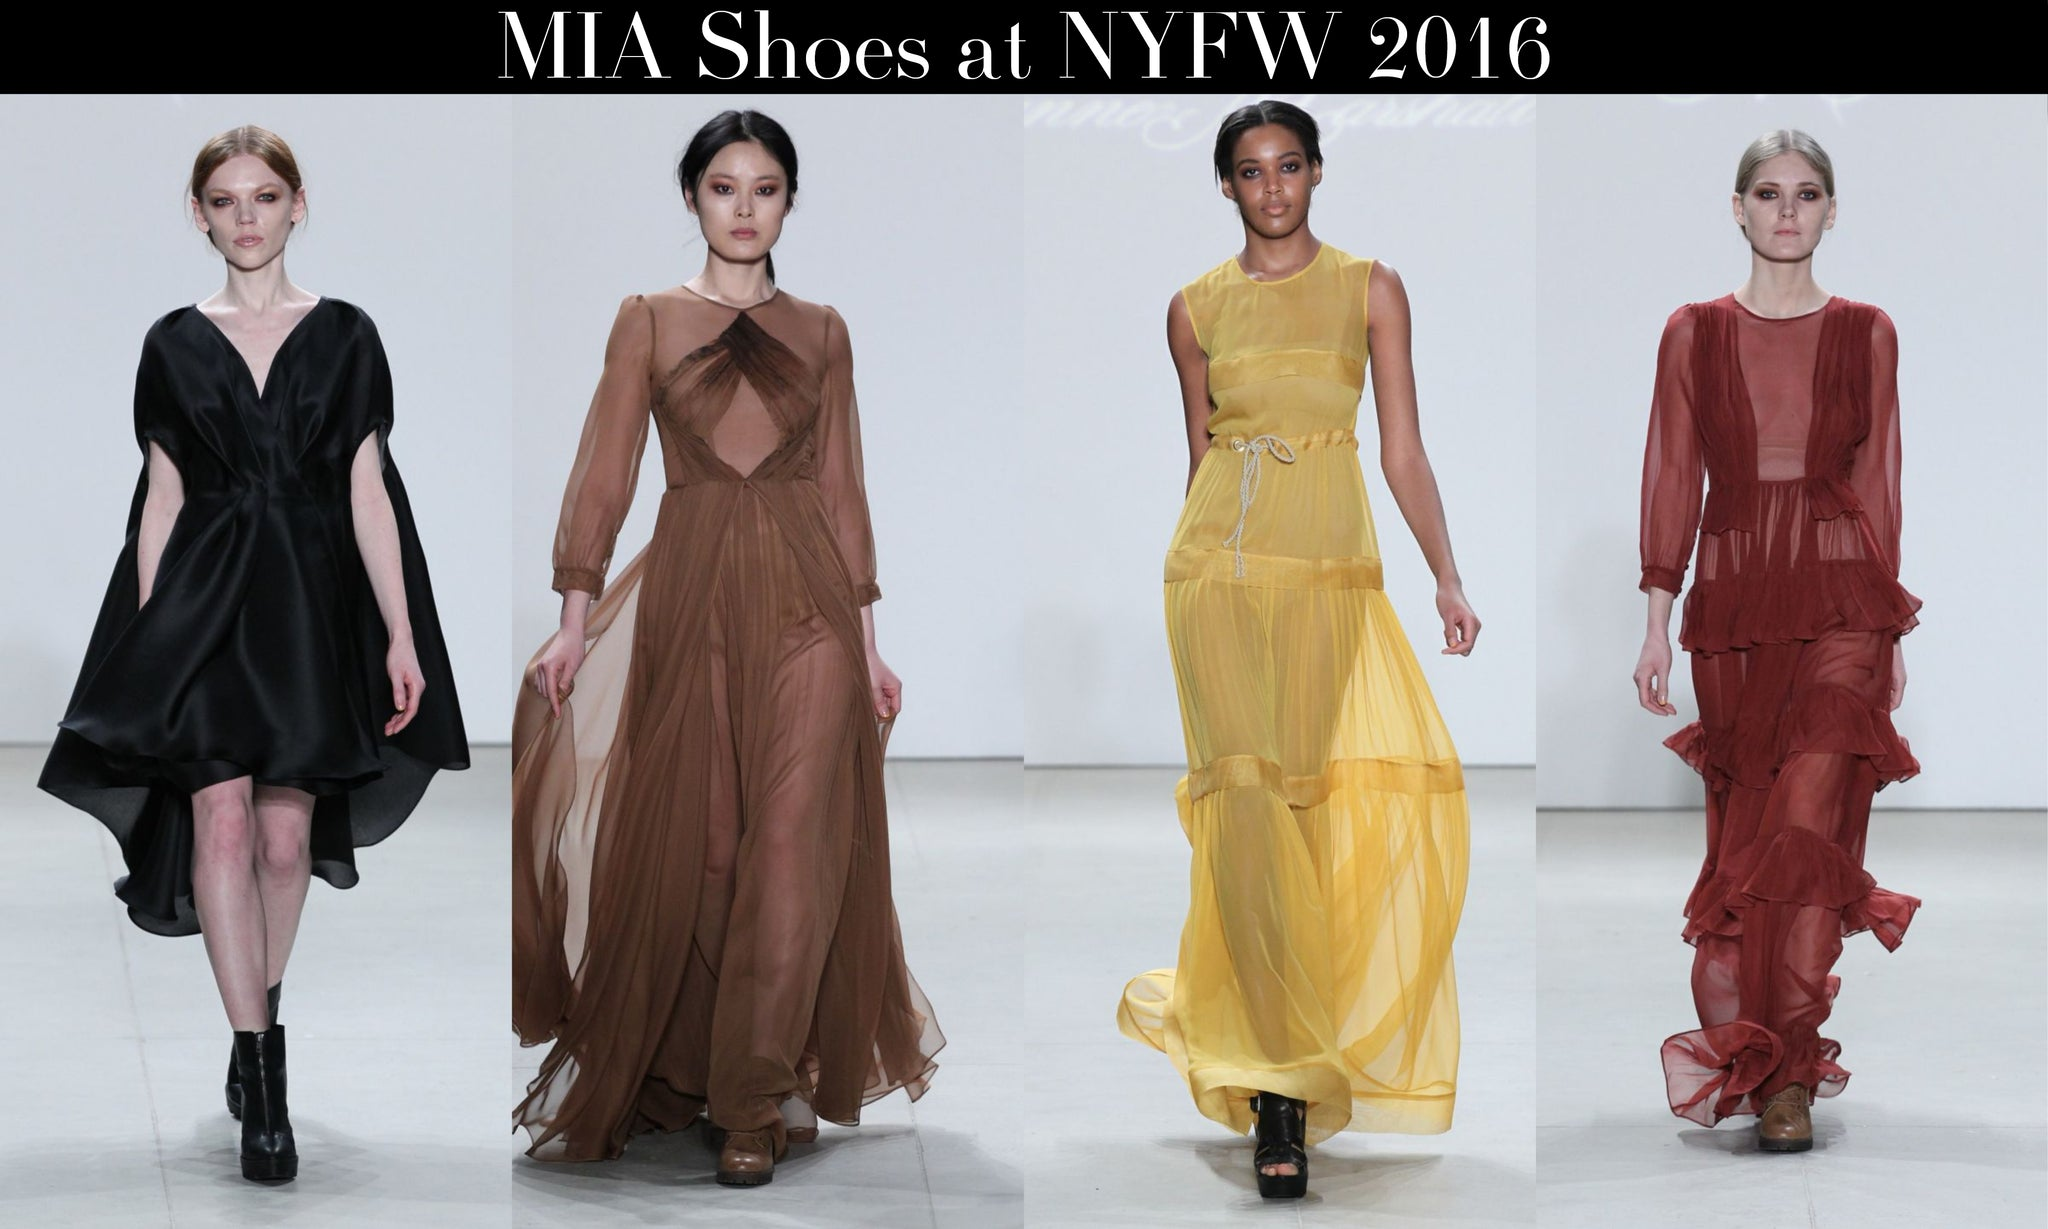 MIA Shoes x NYFW 2016